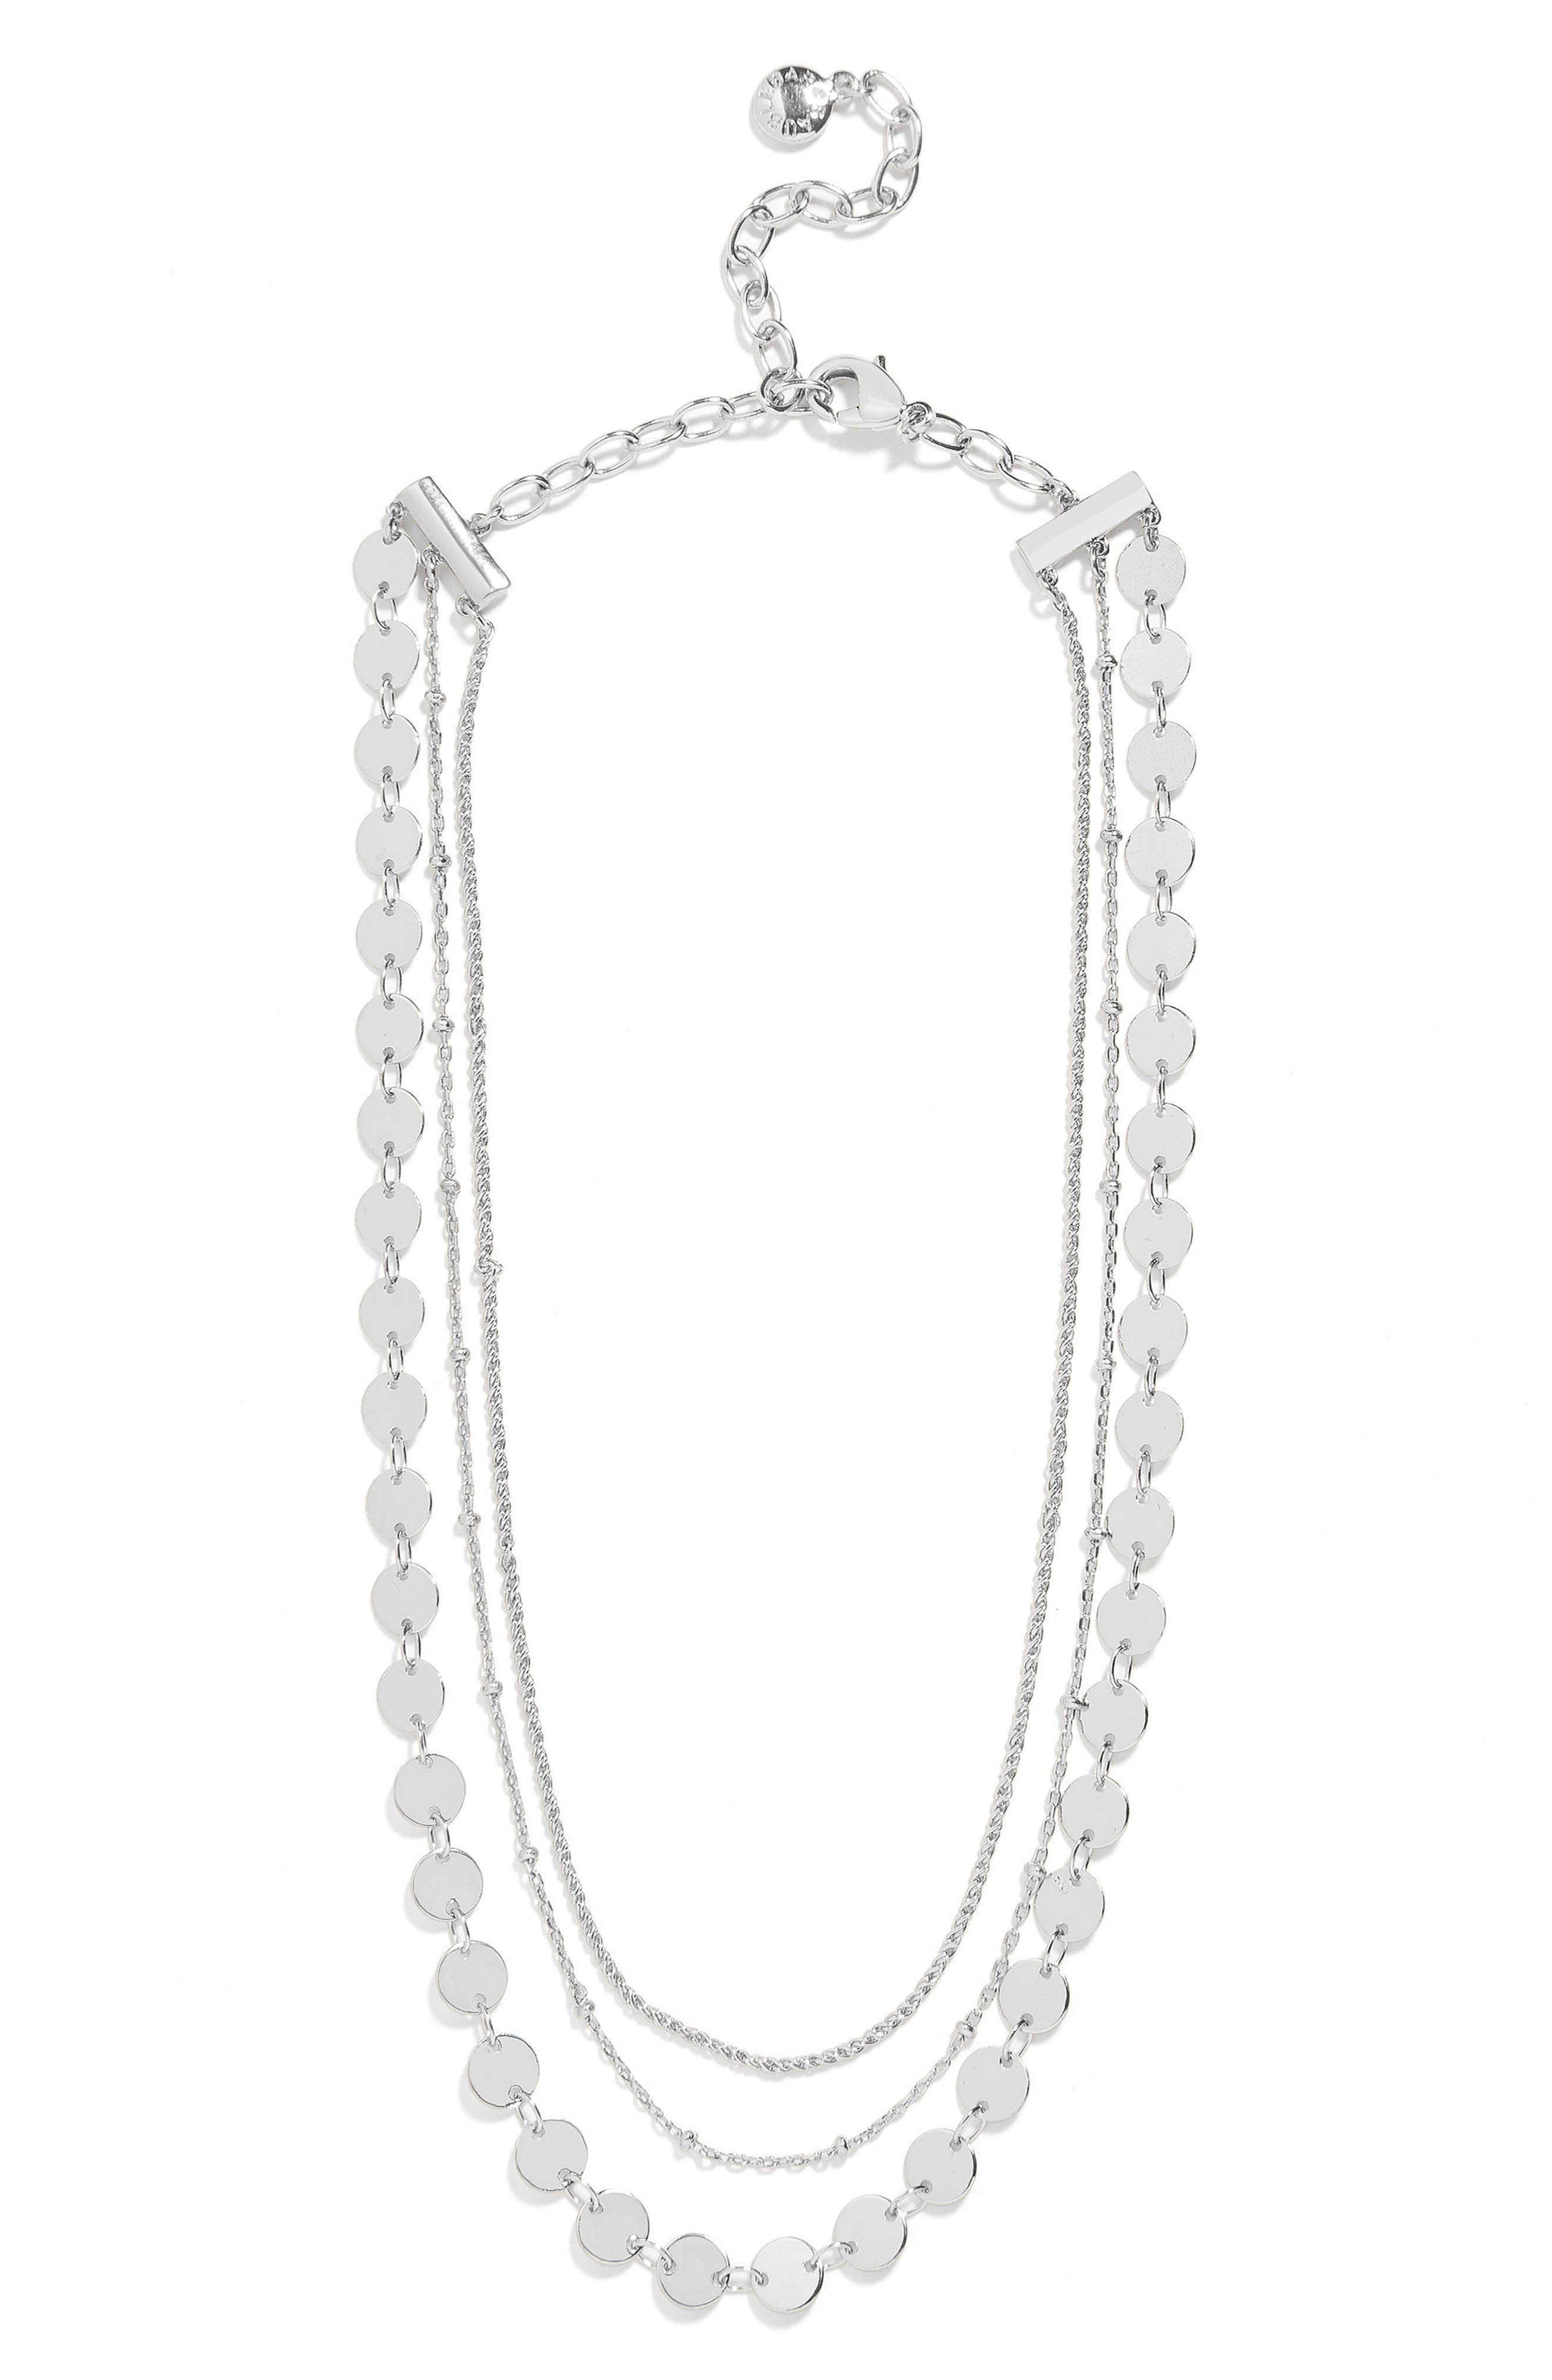 Sophia Layered Collar Necklace,                             Alternate thumbnail 2, color,                             040